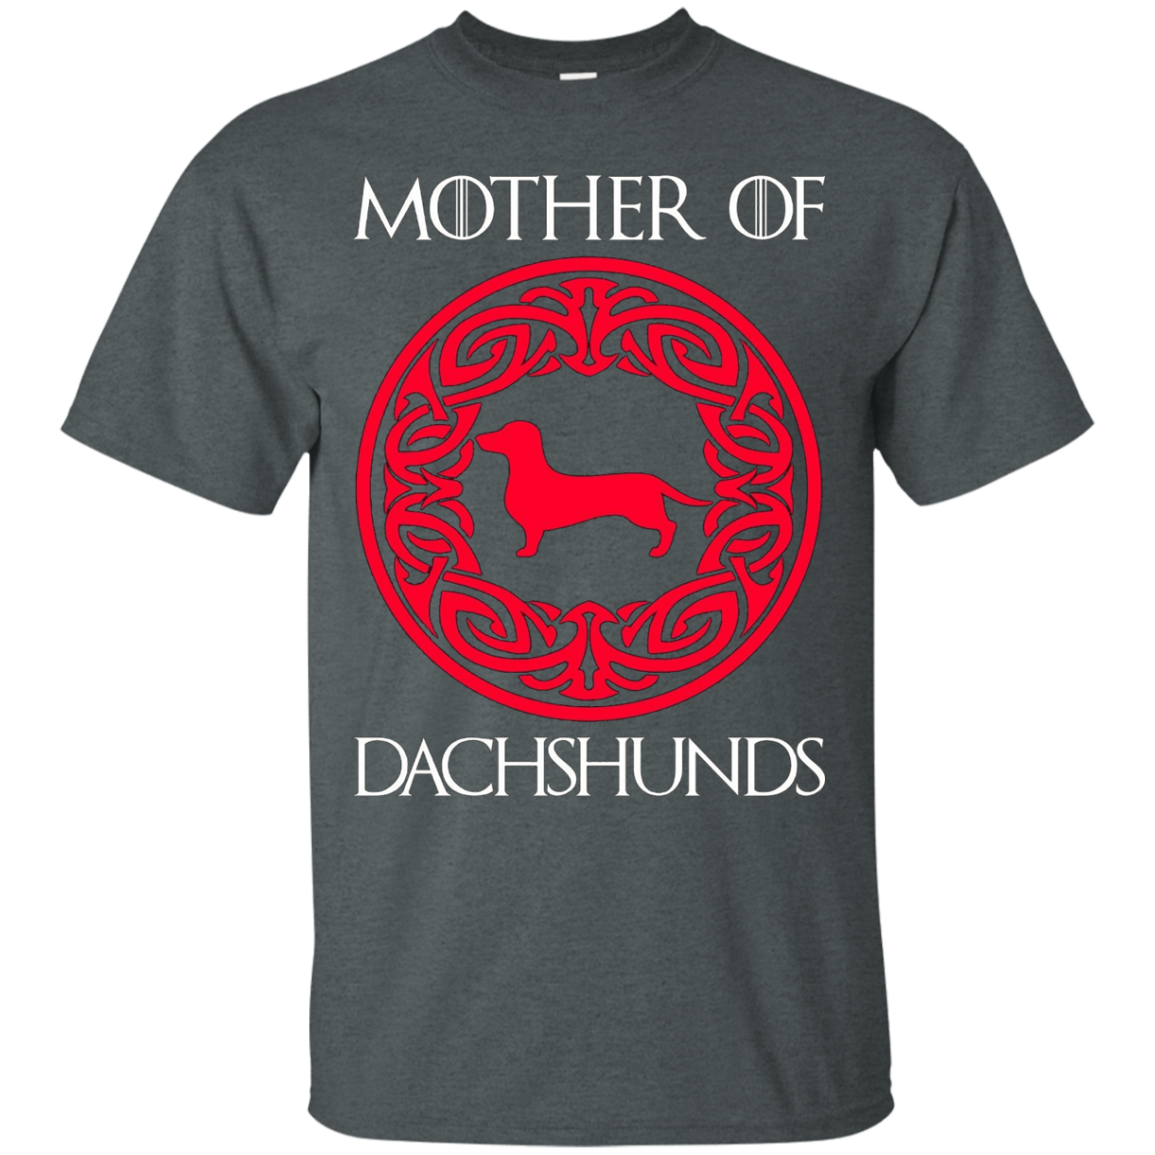 Mother Of Dachshunds T-Shirt - Funny Dachshund Lover Shirts